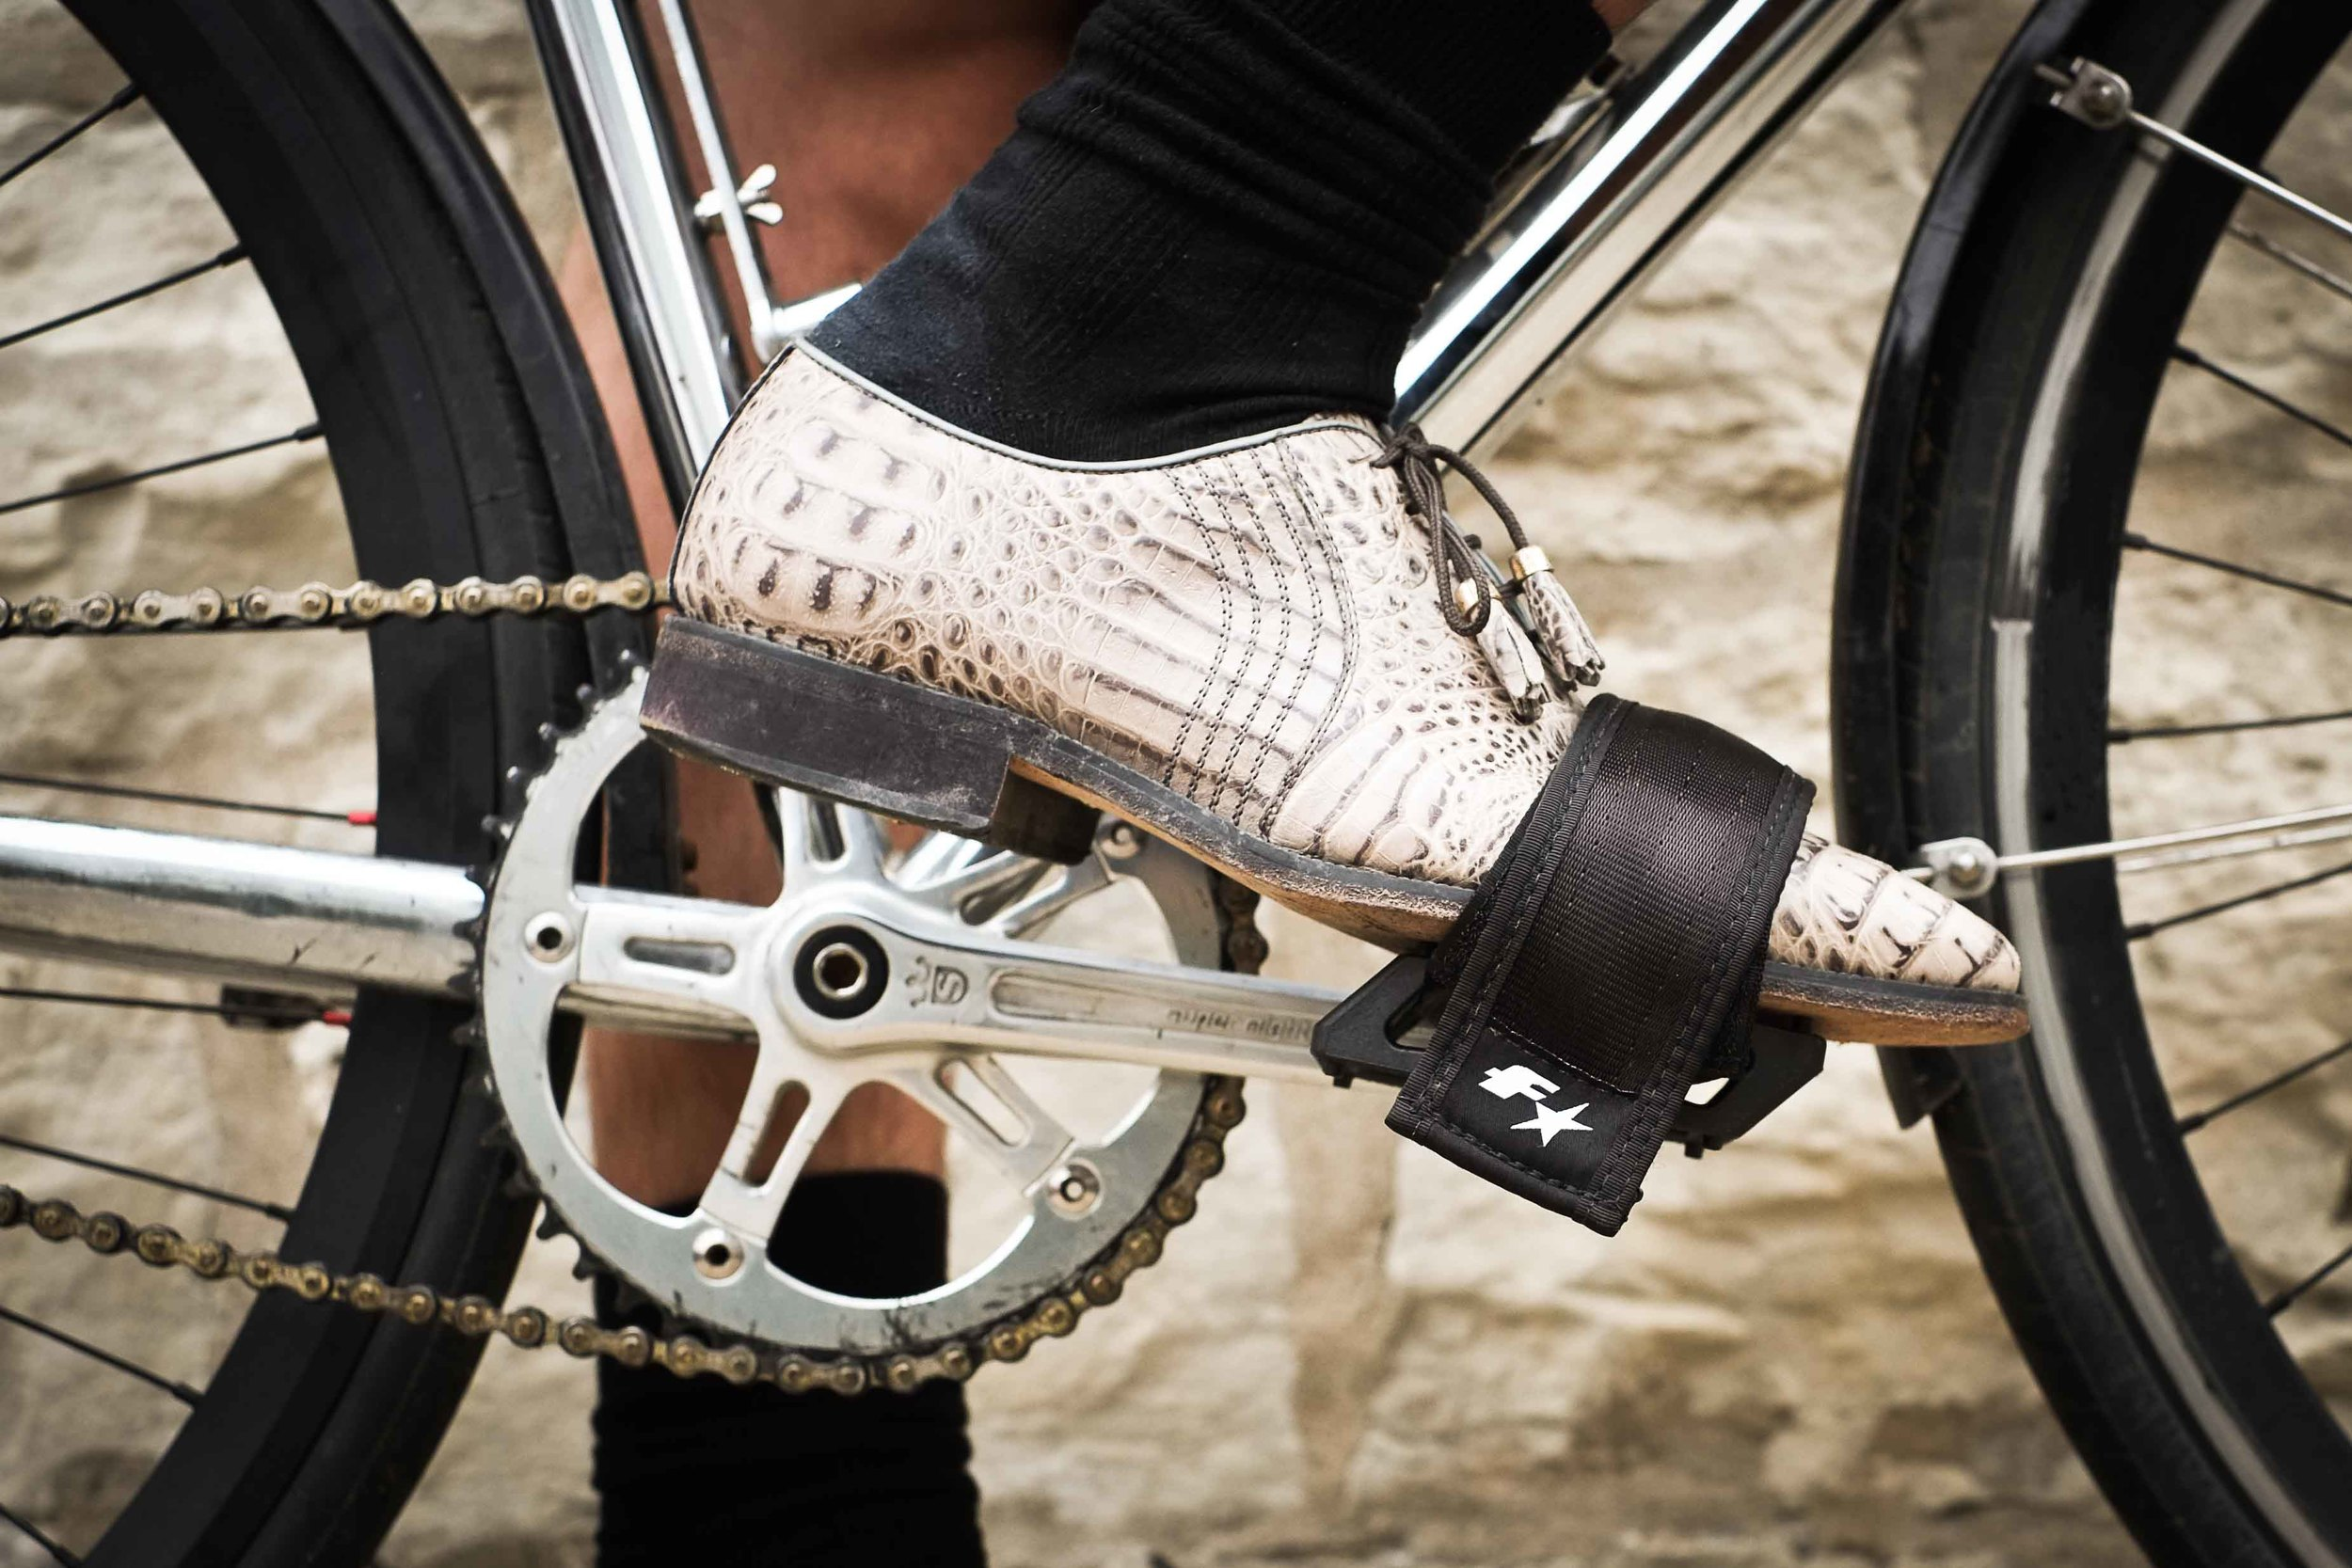 Almost as efficient as clipless pedals, but you don't have to trade in your crocodile leather for plastic and nylon.